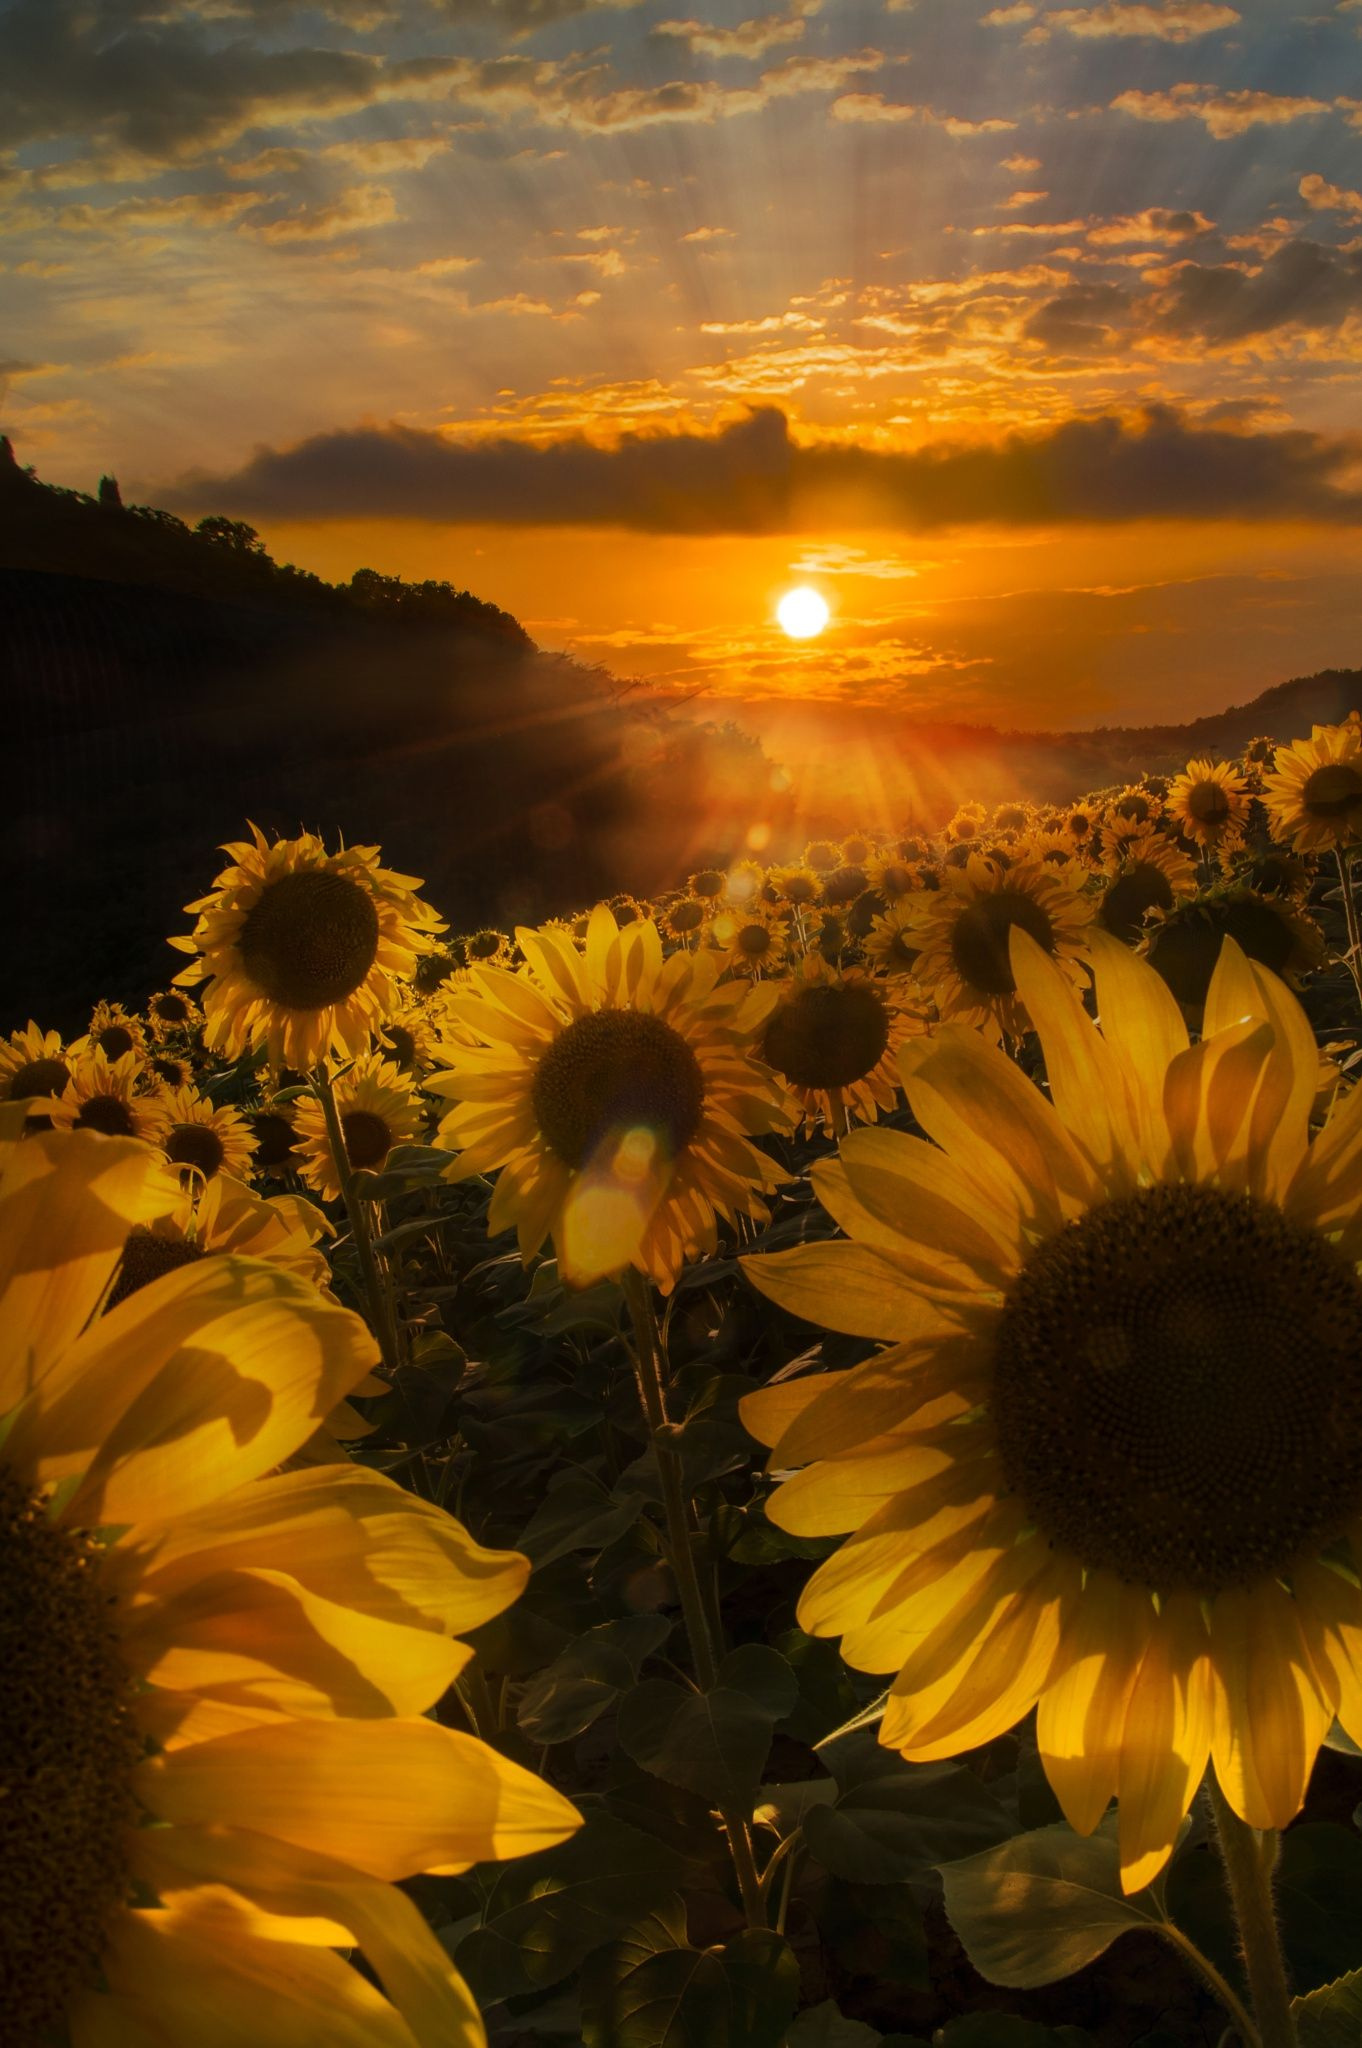 I Love This Photo Because Of The Sunset Nature Photography Sunflower Wallpaper Nature